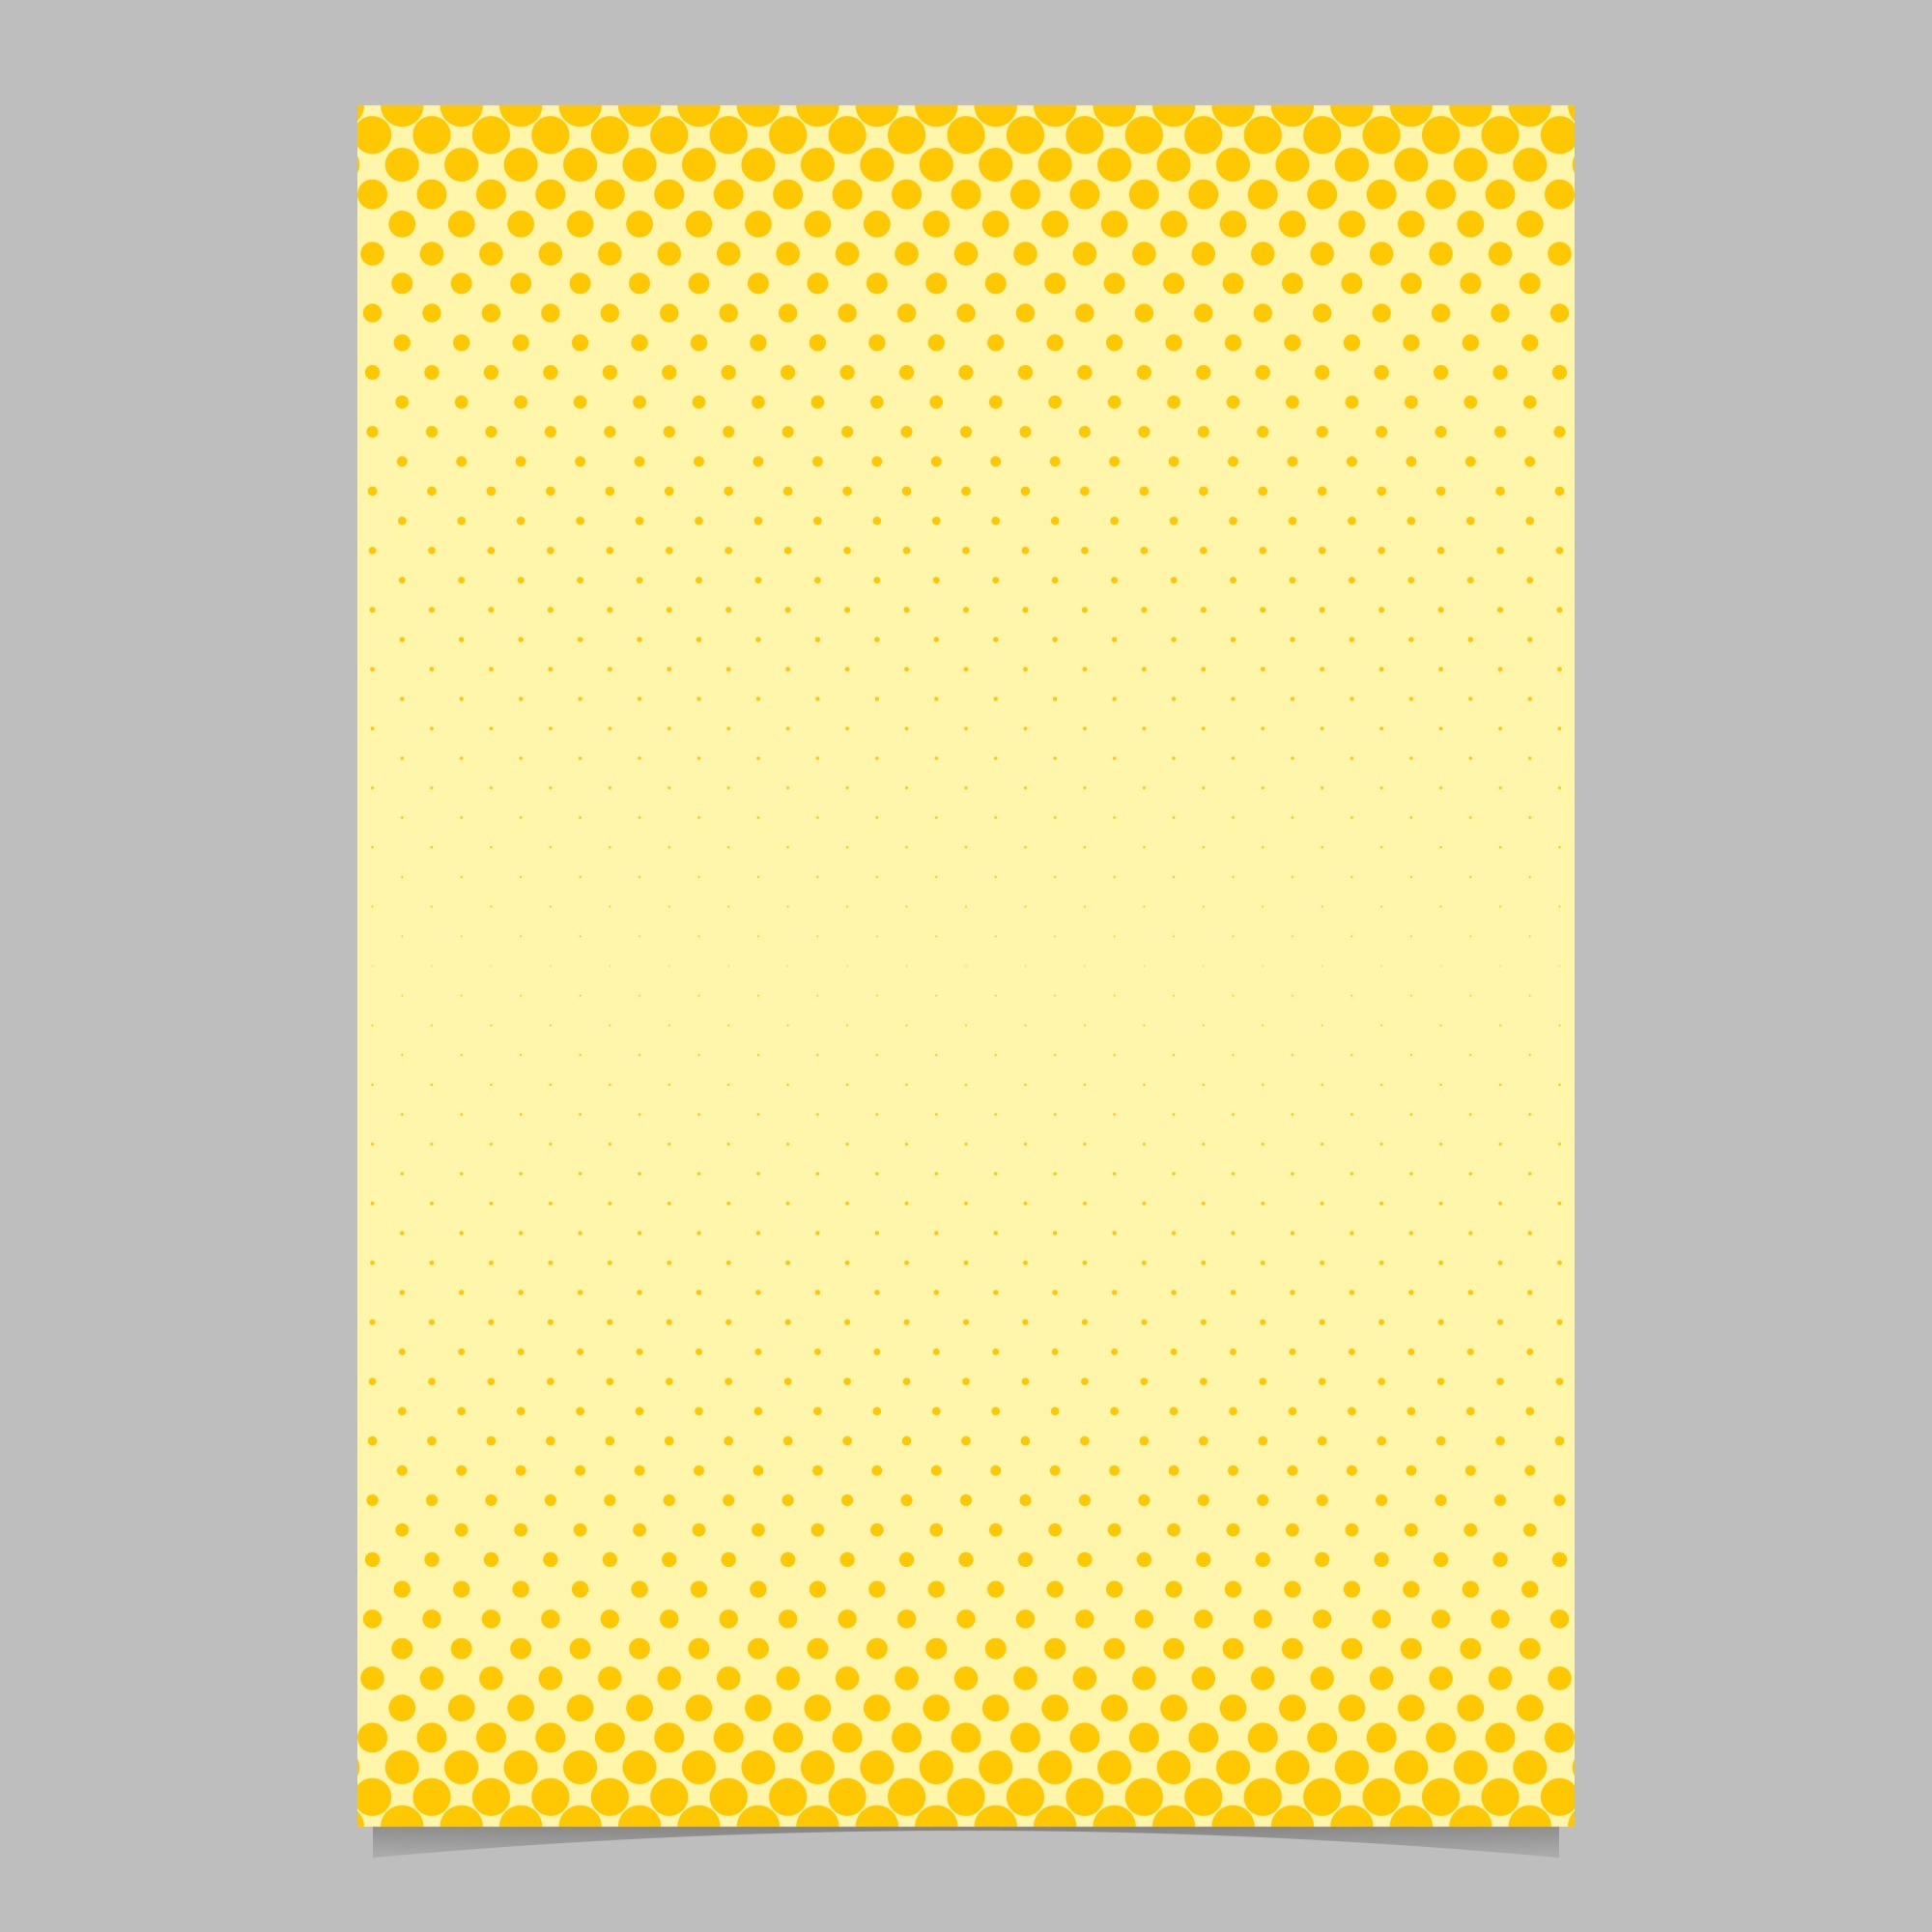 Color abstract halftone circle pattern card template - vector flyer background design with colored dots